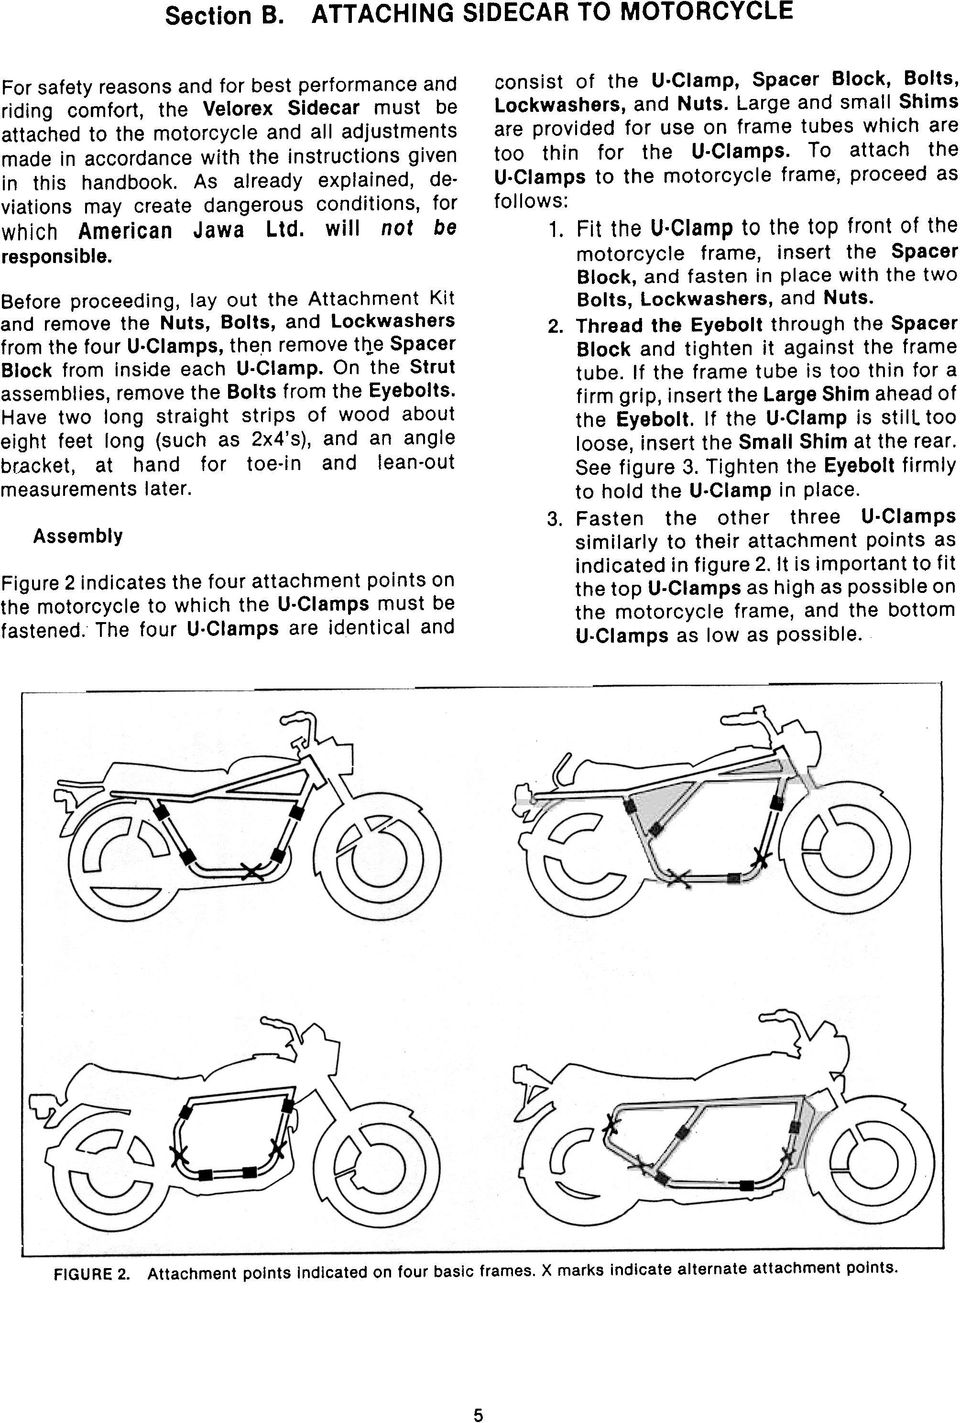 instructions given in this handbook. As already explained, deviations may create dangerous conditions, for which American Jawa Ltd. will not be responsible.